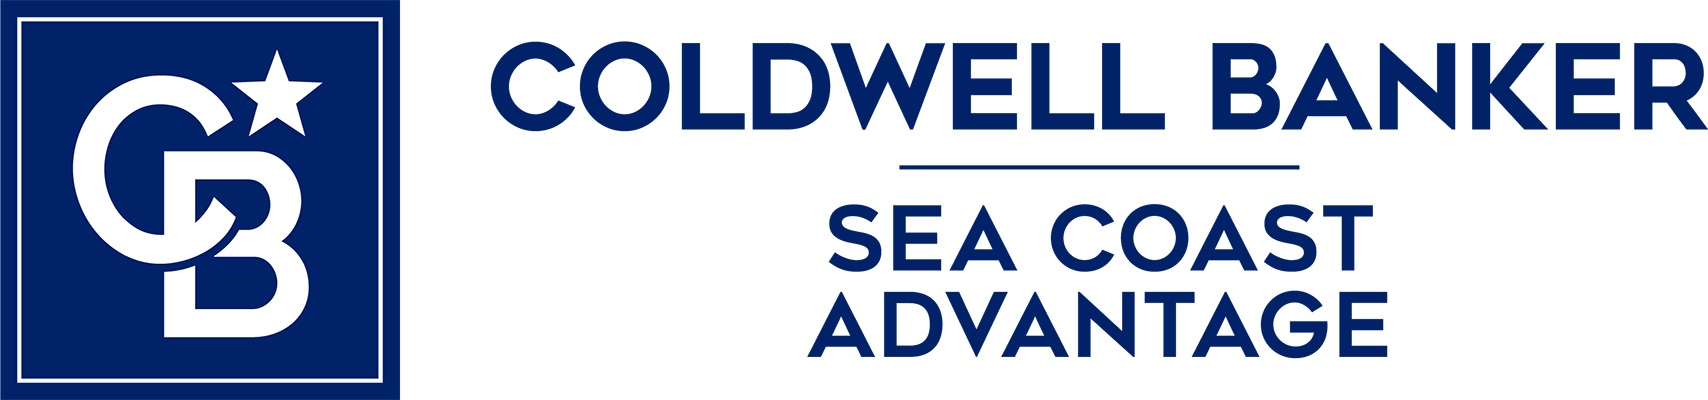 Jeanne Gillies - Coldwell Banker Sea Coast Advantage Realty